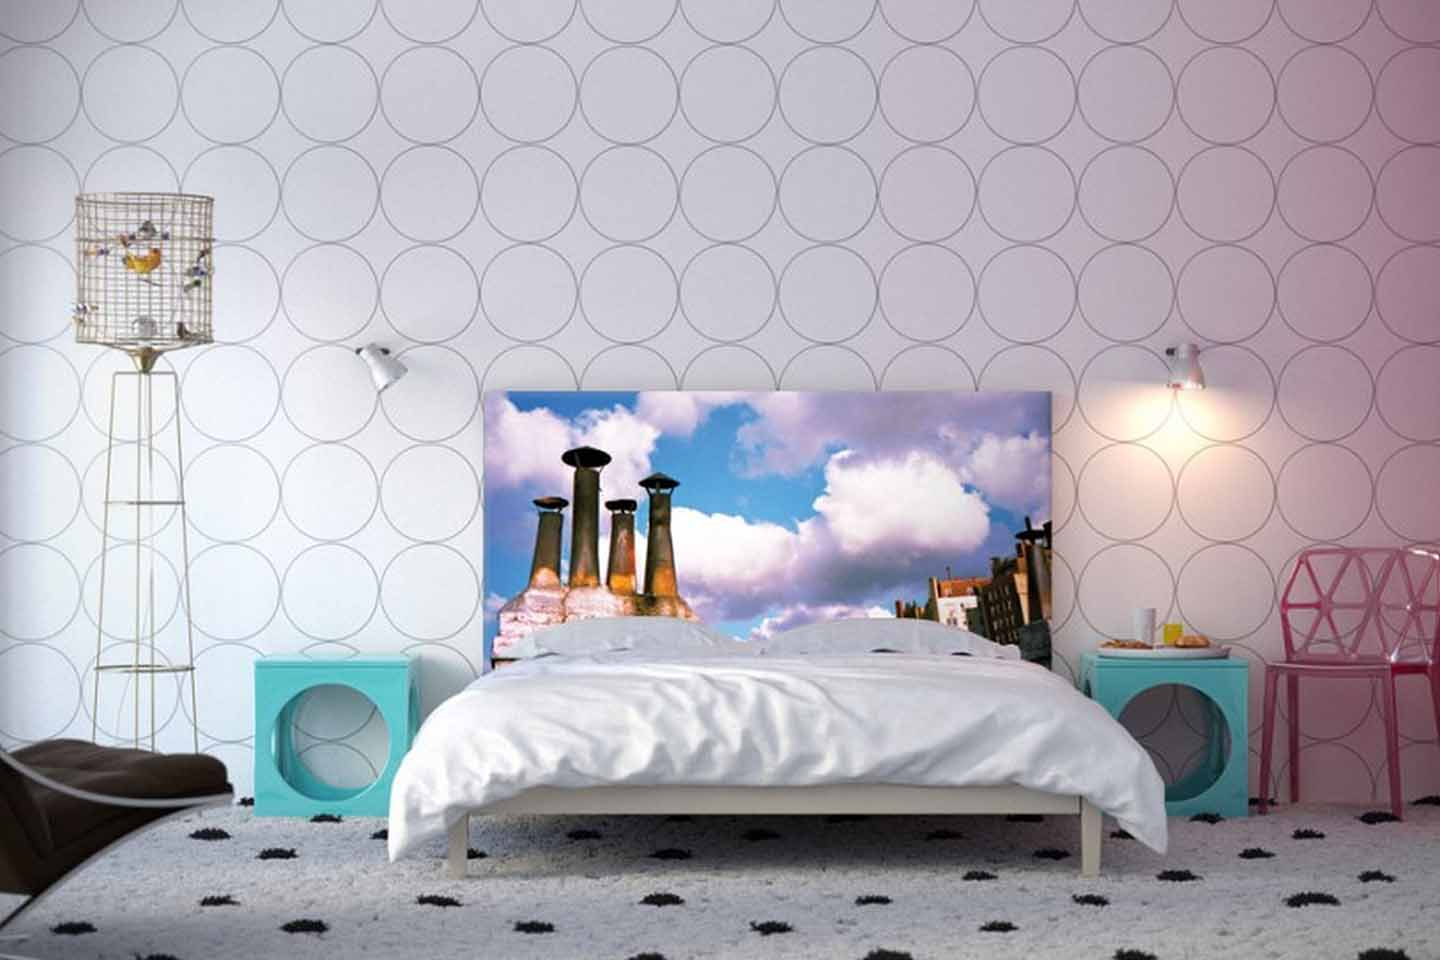 Imaginative wallpaper for bedroom. 16 Stunning Bedroom Wallpaper Ideas That Will Transform Your Bedroom